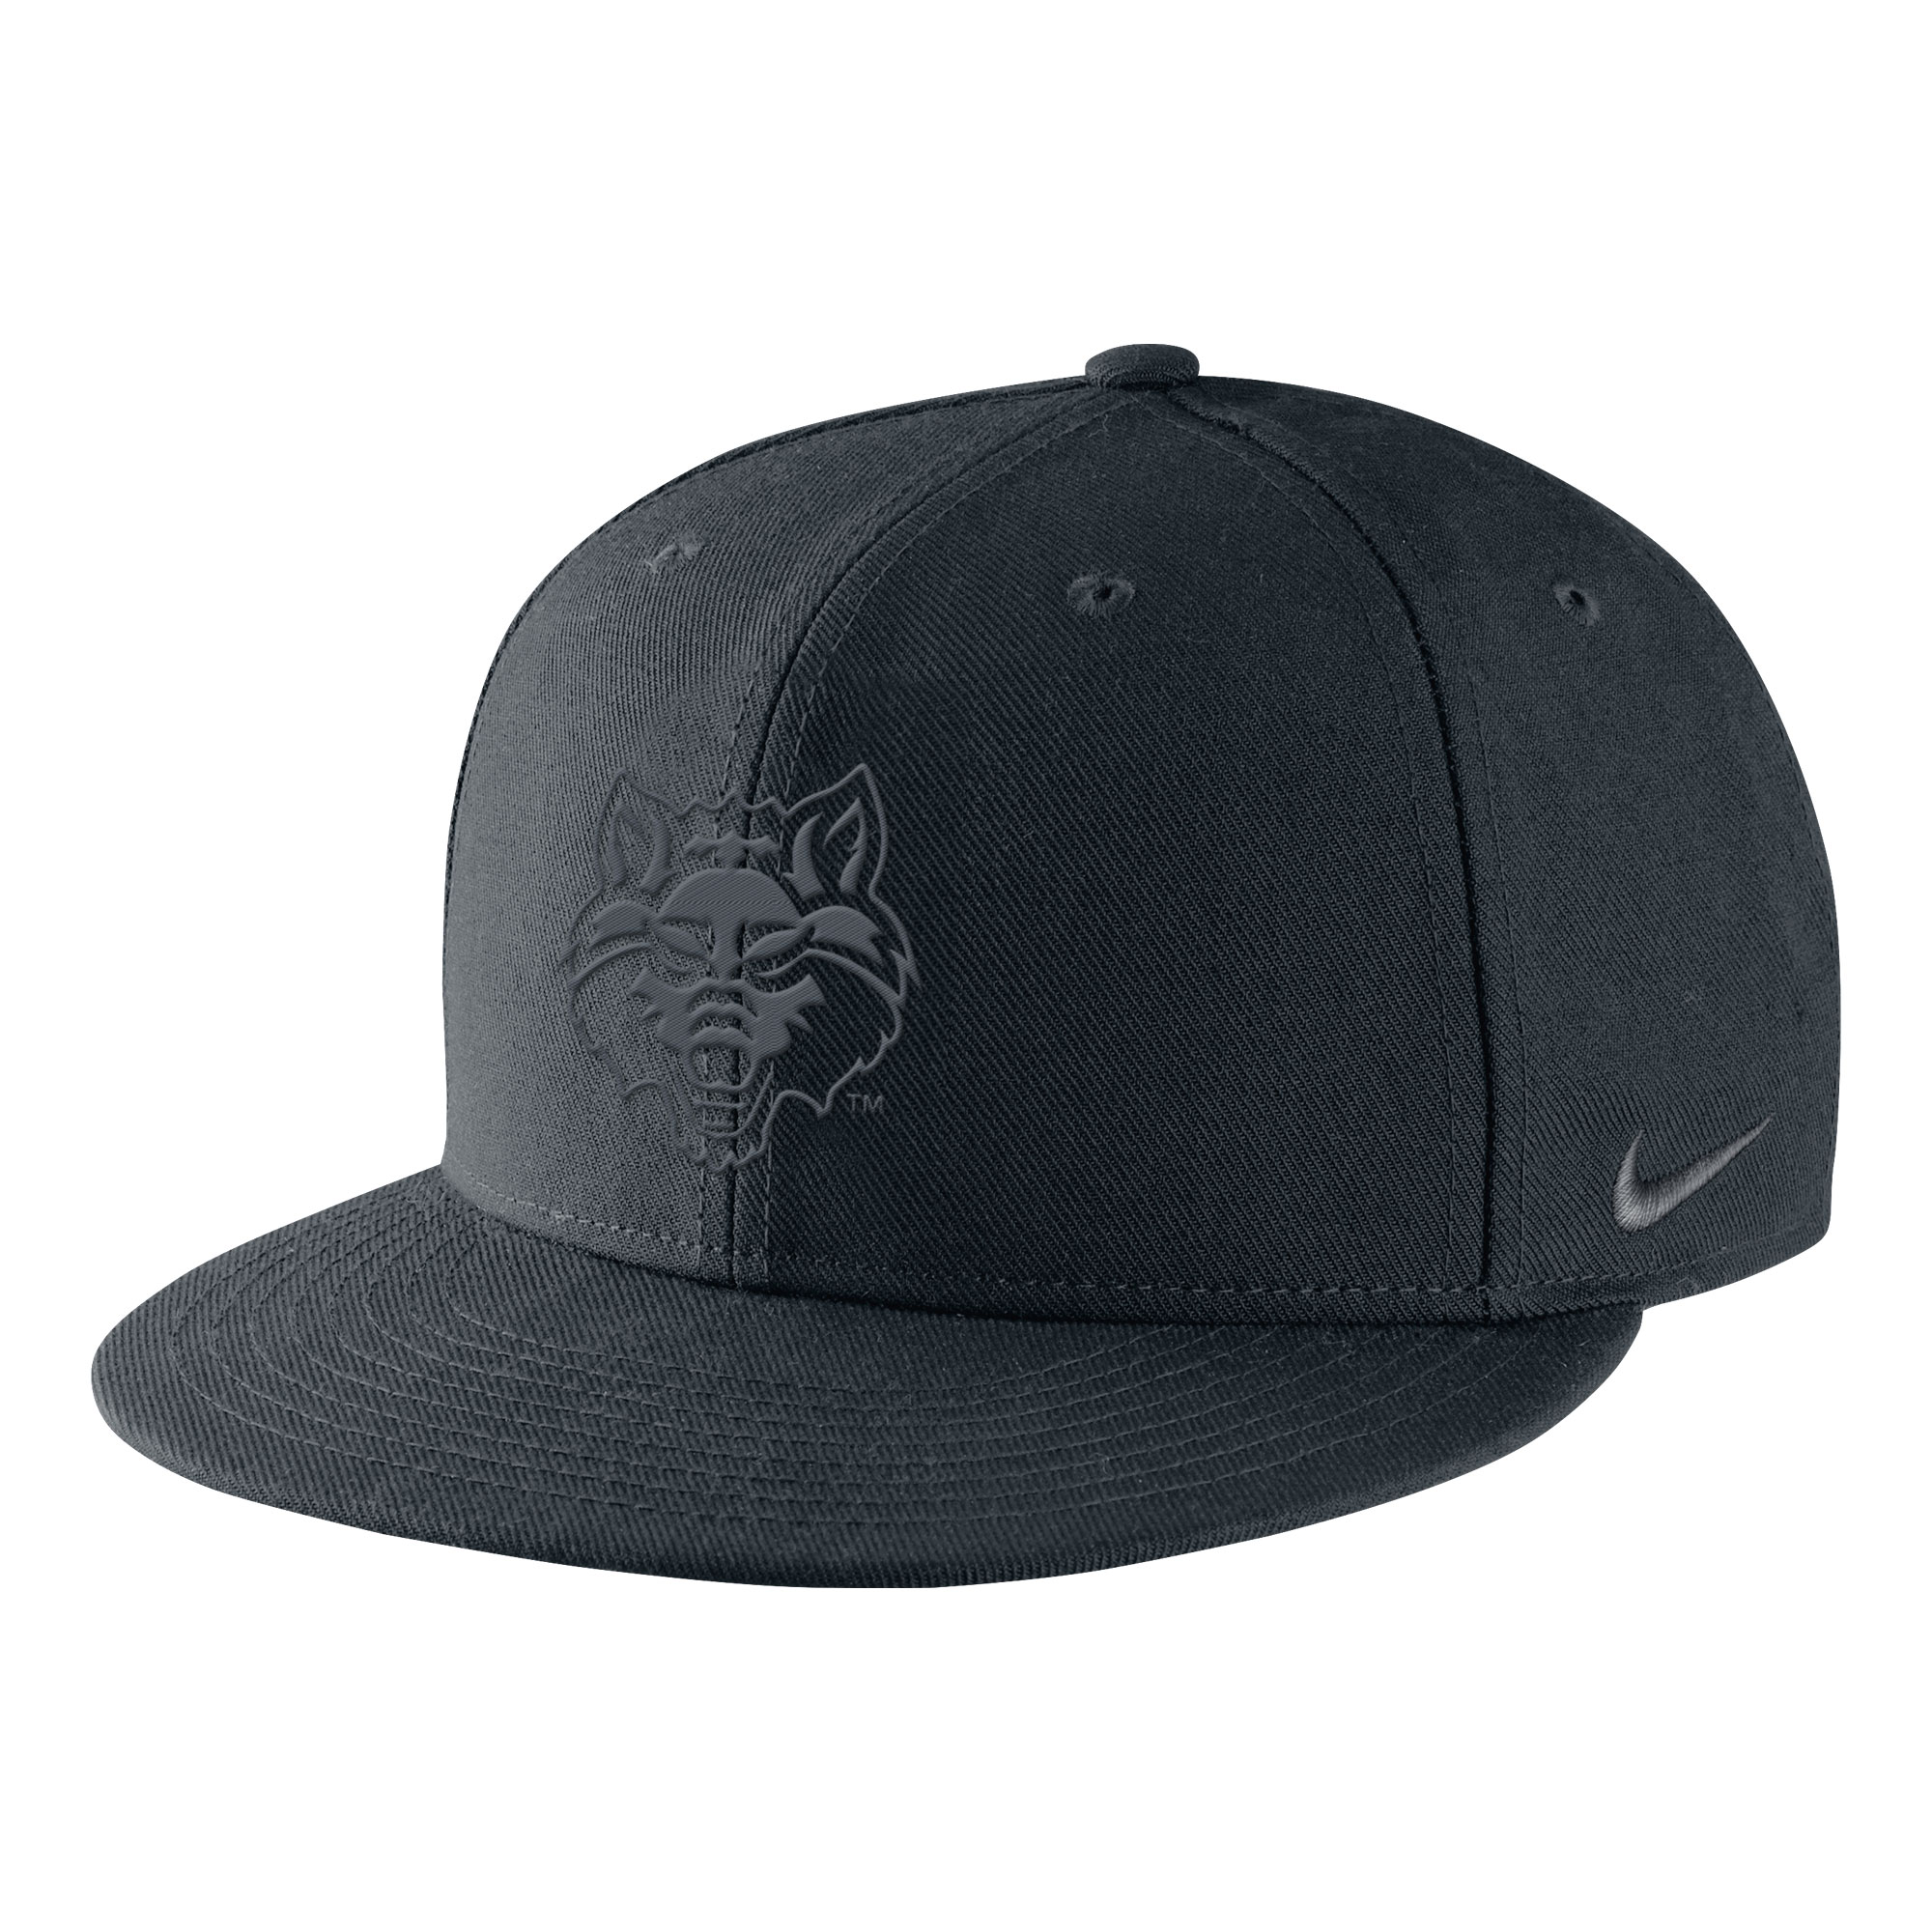 Red Wolves Black Core Flat Bill Cap